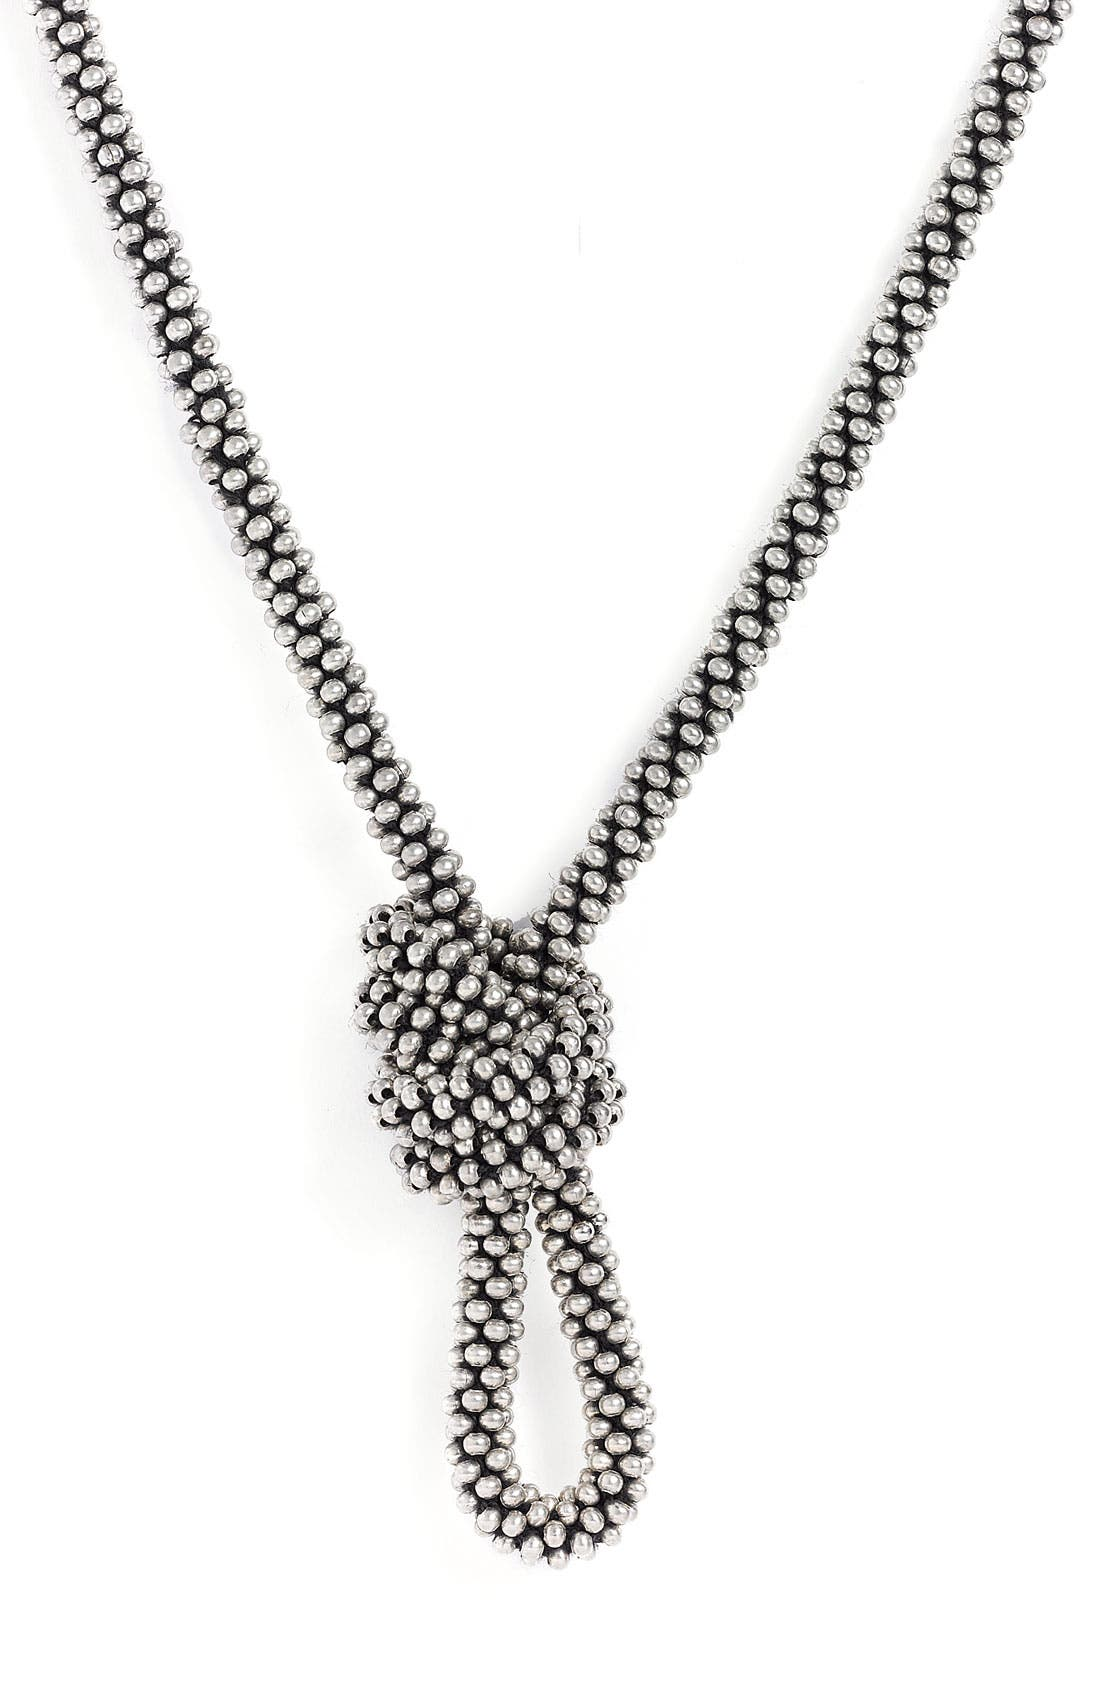 Main Image - Stephan & Co. 'Endless' Beaded Necklace